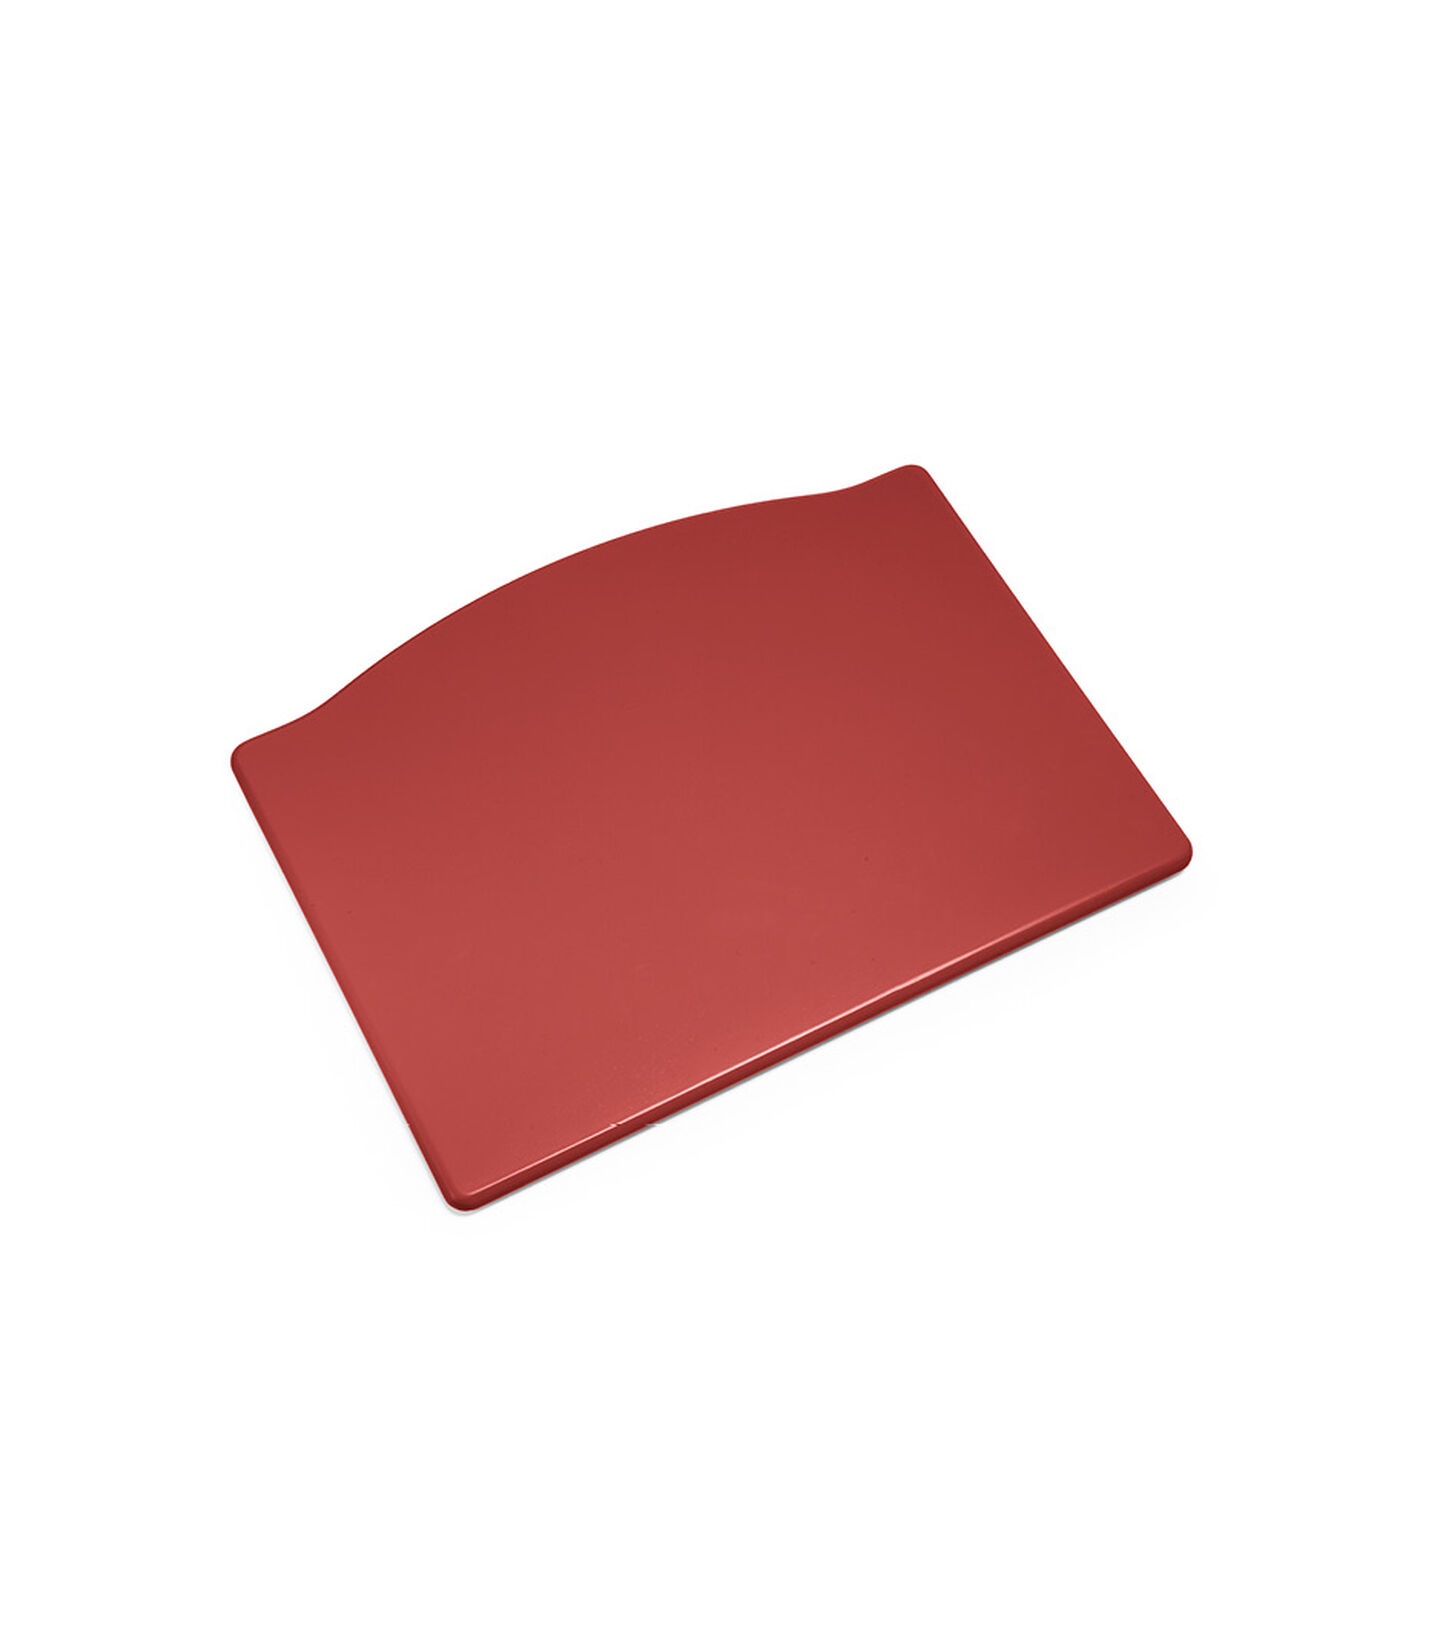 Tripp Trapp Foot plate Warm Red (Spare part). view 1